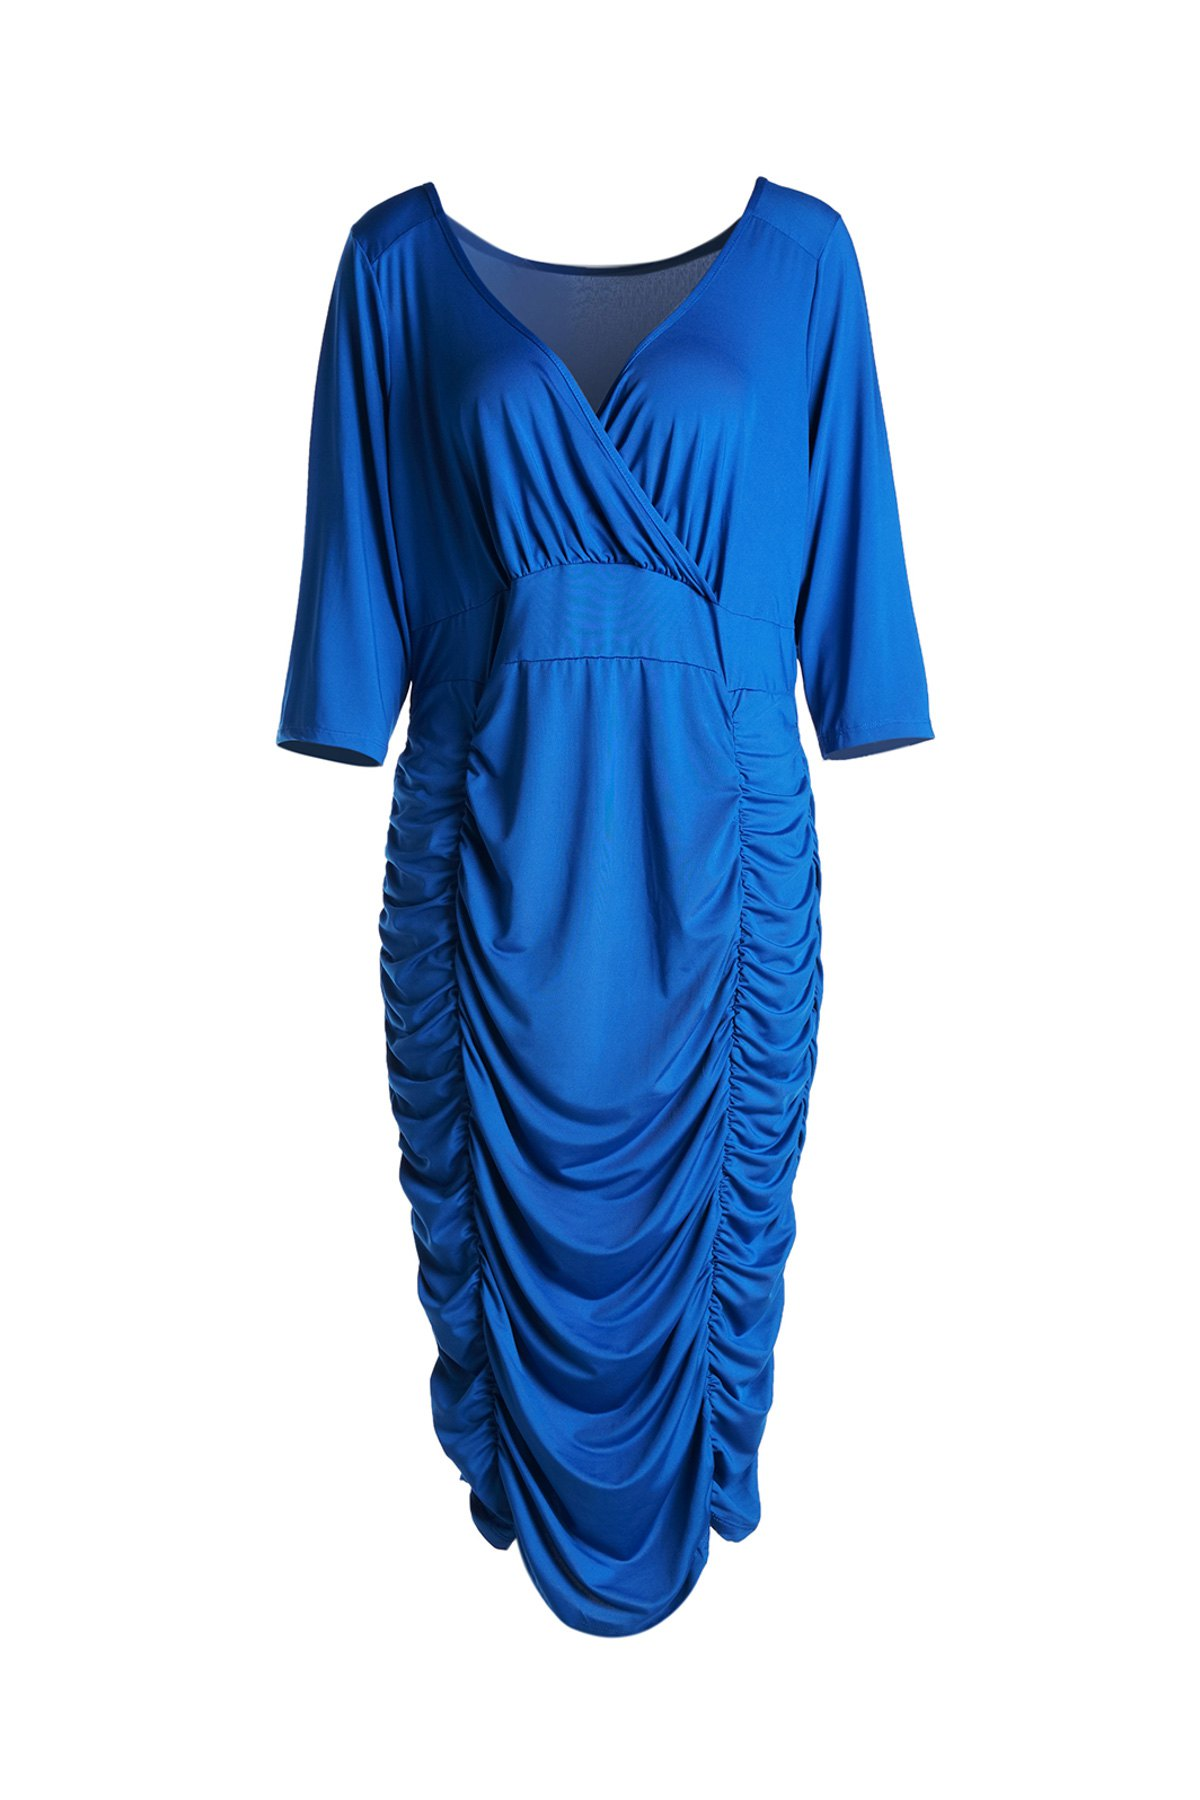 Sexy Solid Color V-Neck 3/4 Sleeve Bodycon Ruched Midi Dress For WomenWomen<br><br><br>Size: 2XL<br>Color: BLUE